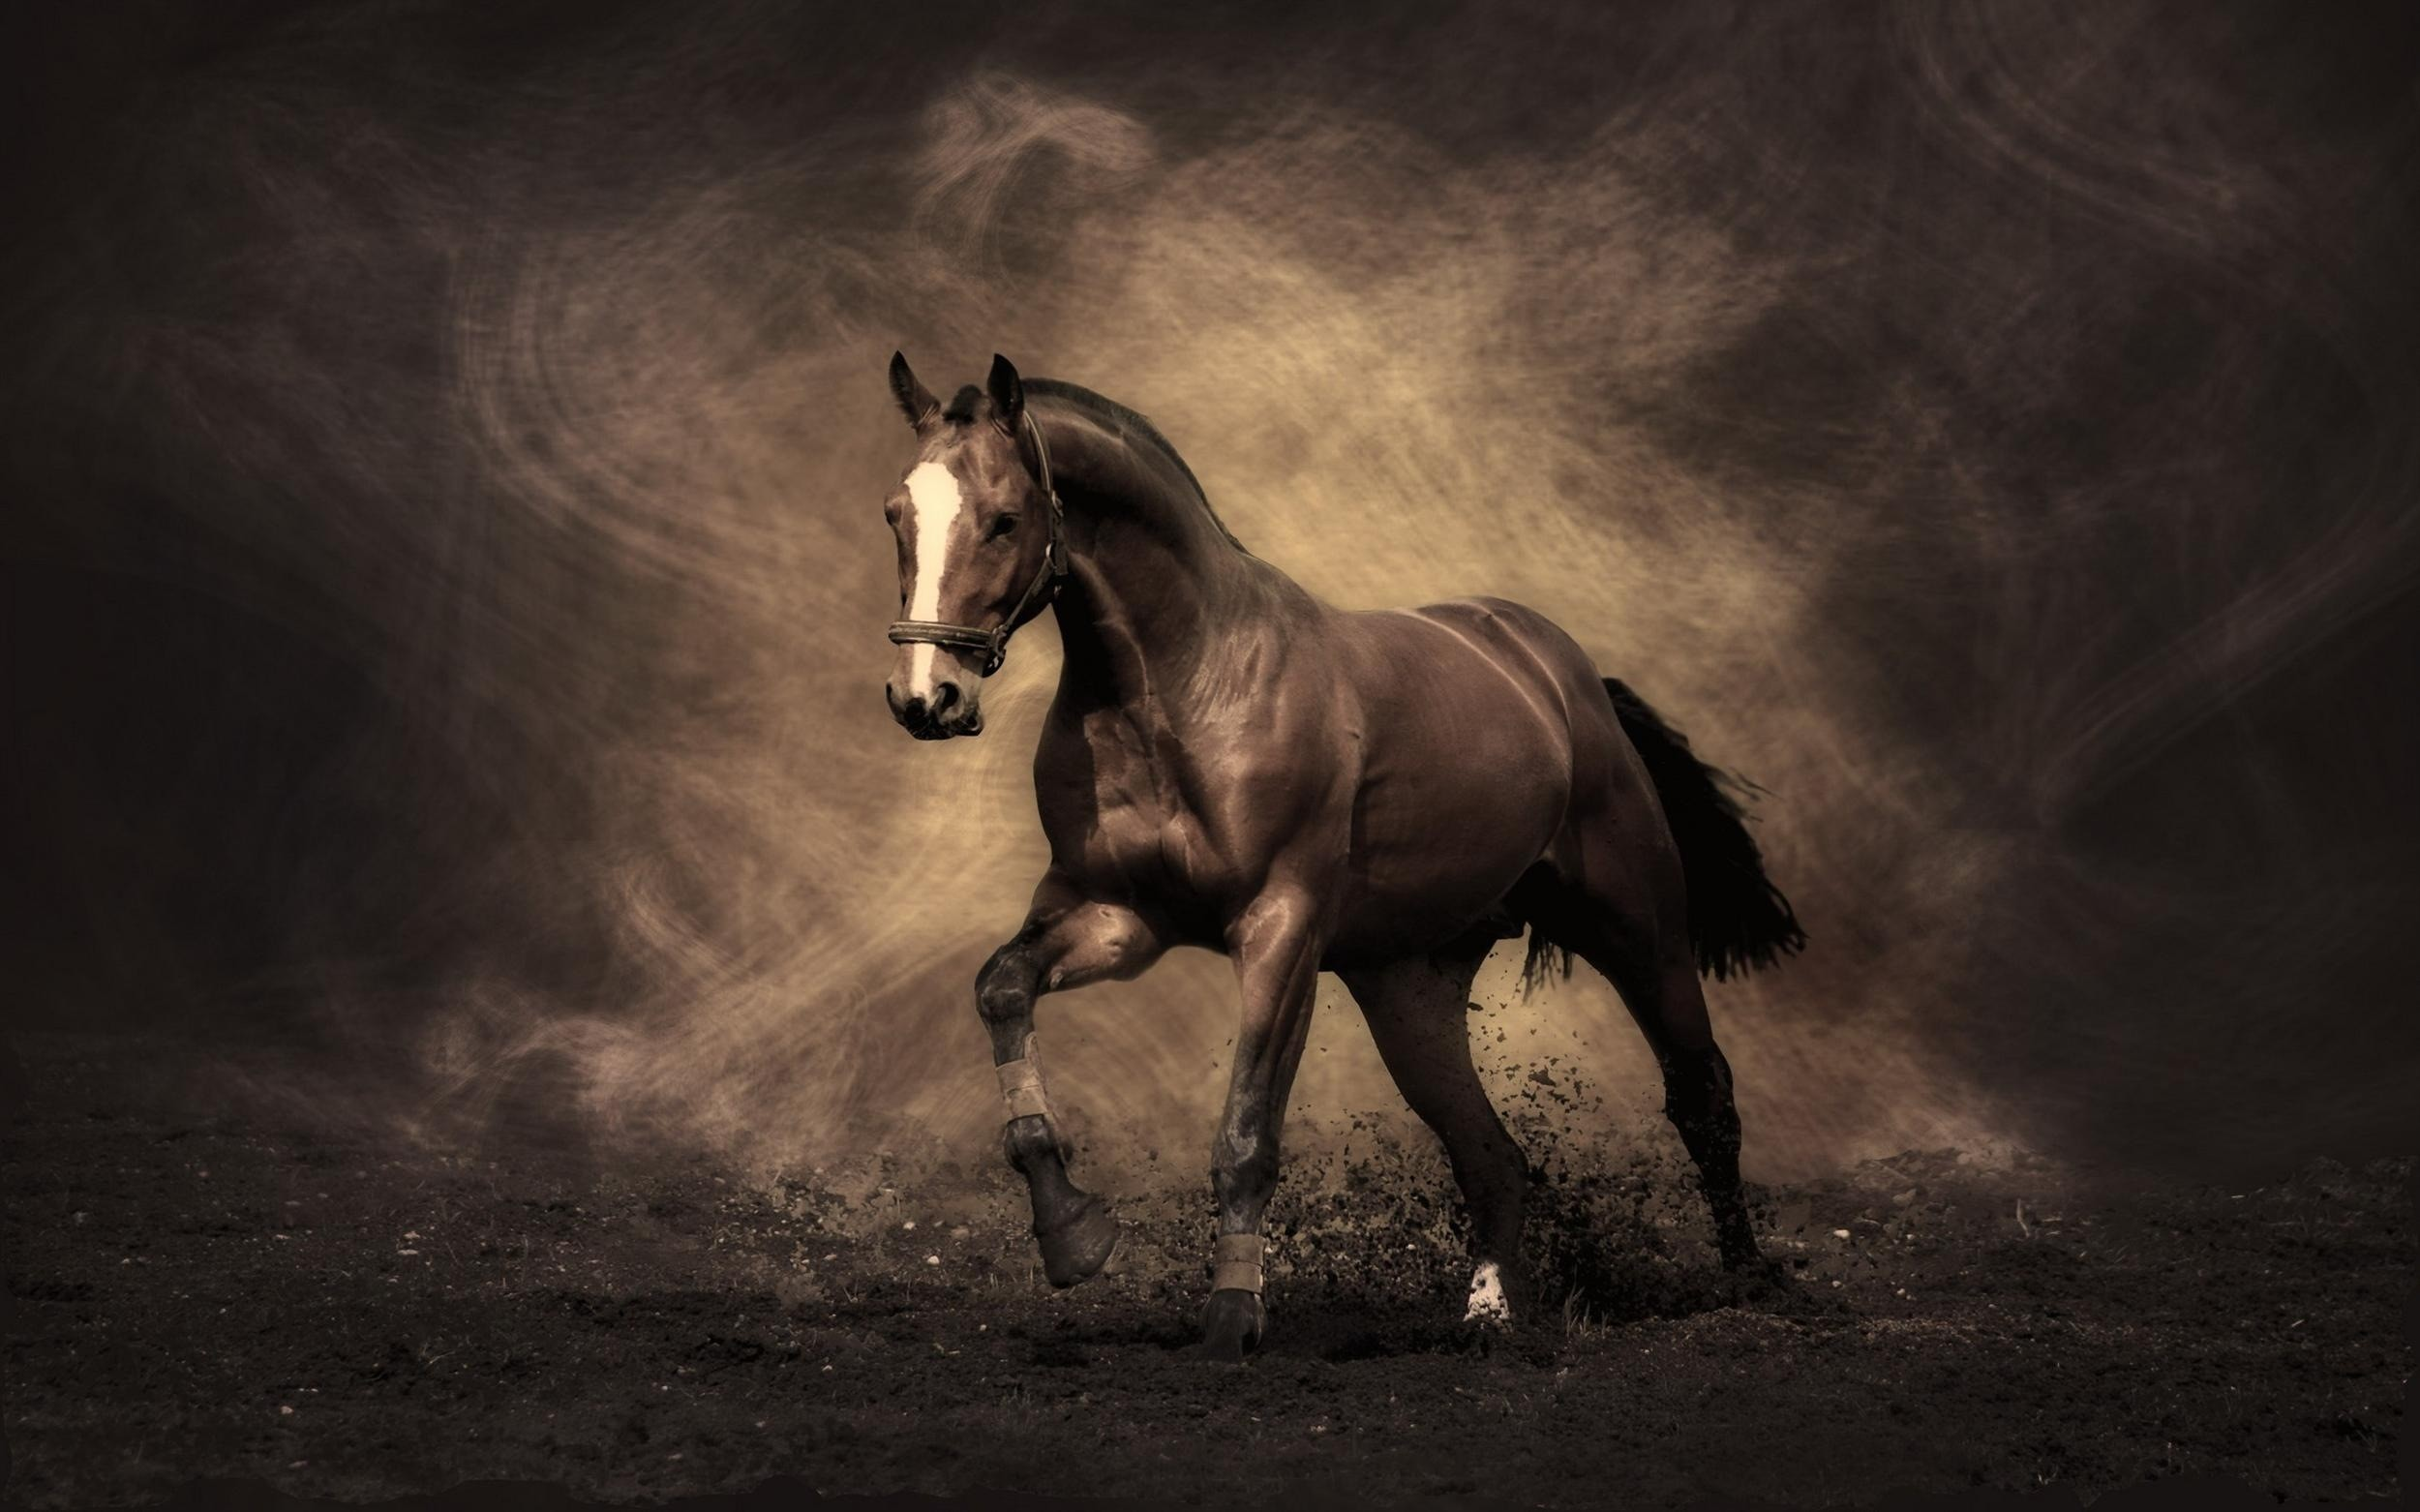 Horse photography wallpapers 41 images 2500x1562 horse wallpapers hd pictures one hd wallpaper pictures horse wallpaper hd wallpapers voltagebd Image collections